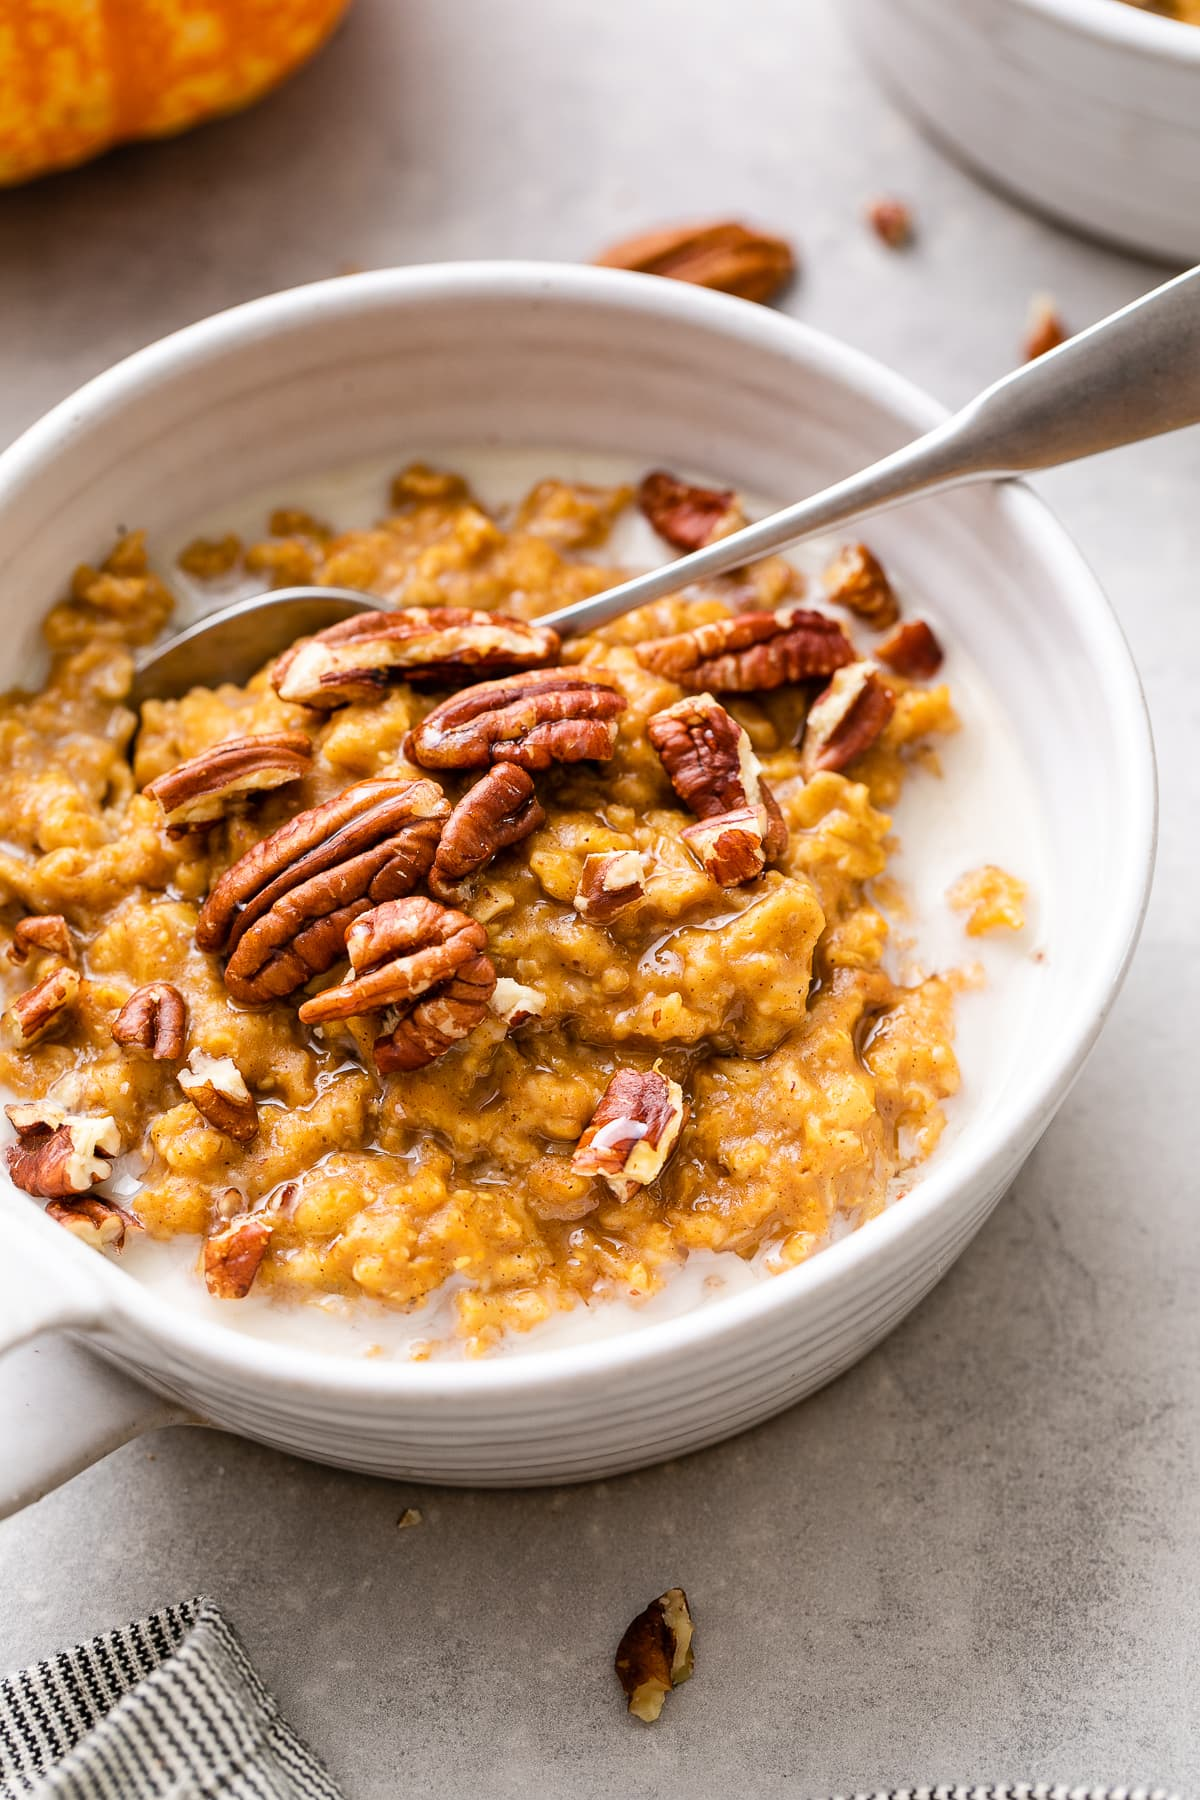 side angle view of vegan pumpkin oatmeal in a whole bowl with spoon and items surrounding.